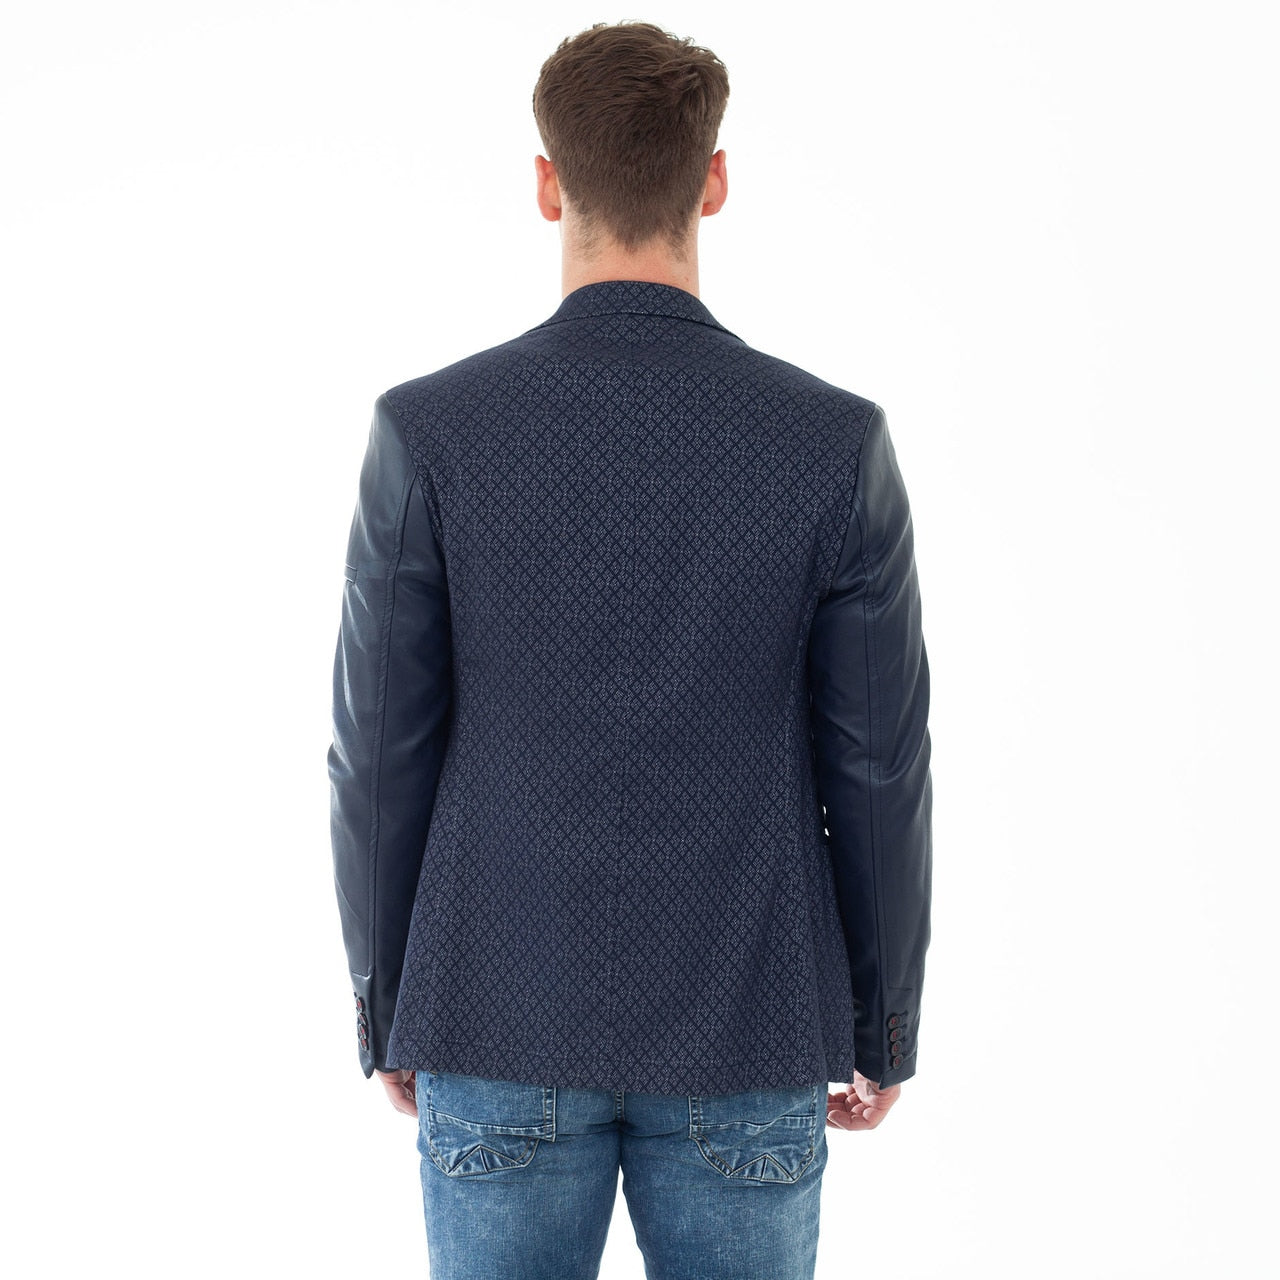 Navy Kennedy Jacket with Contrasting Sleeves